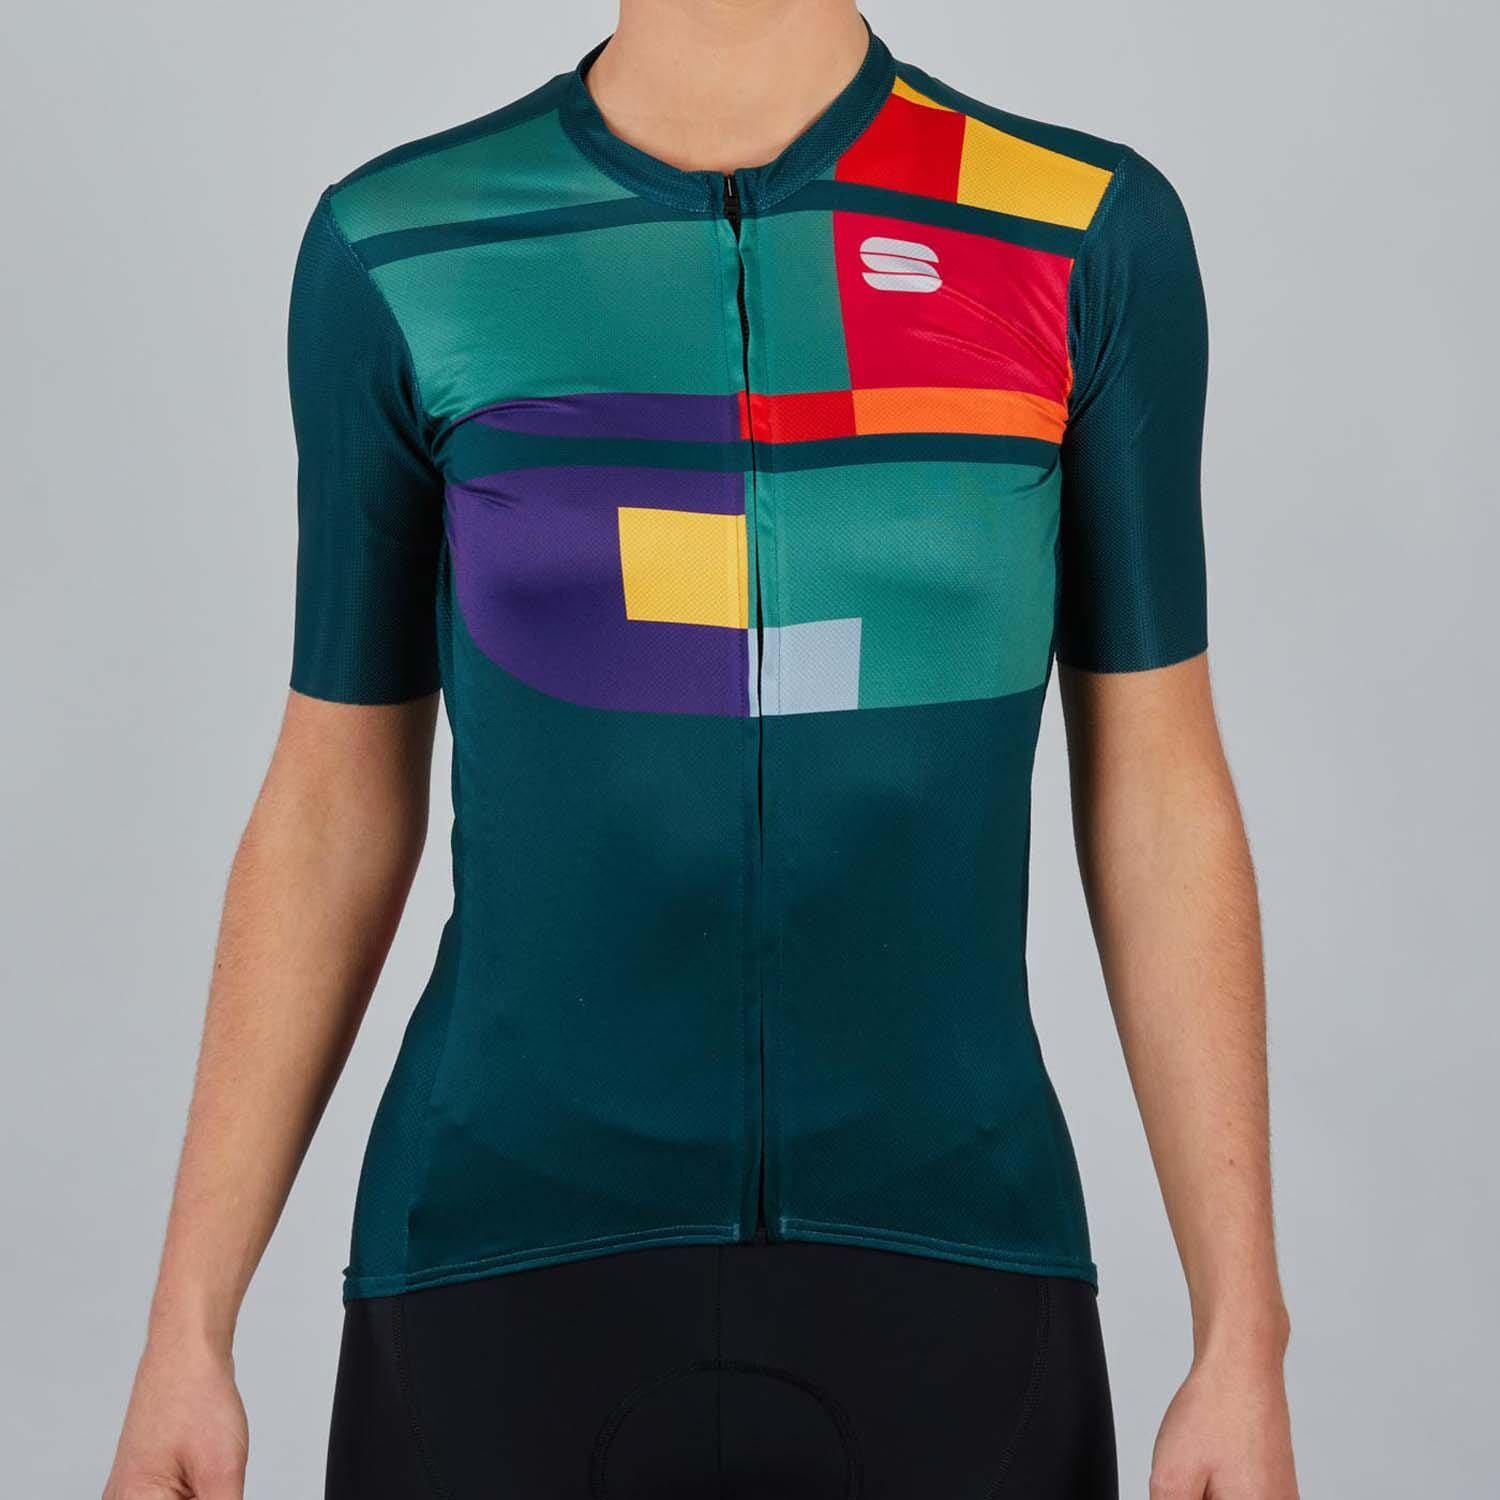 Sportful-Sportful Idea Women's Jersey-Sea Moss-XS-SF210823291-saddleback-elite-performance-cycling